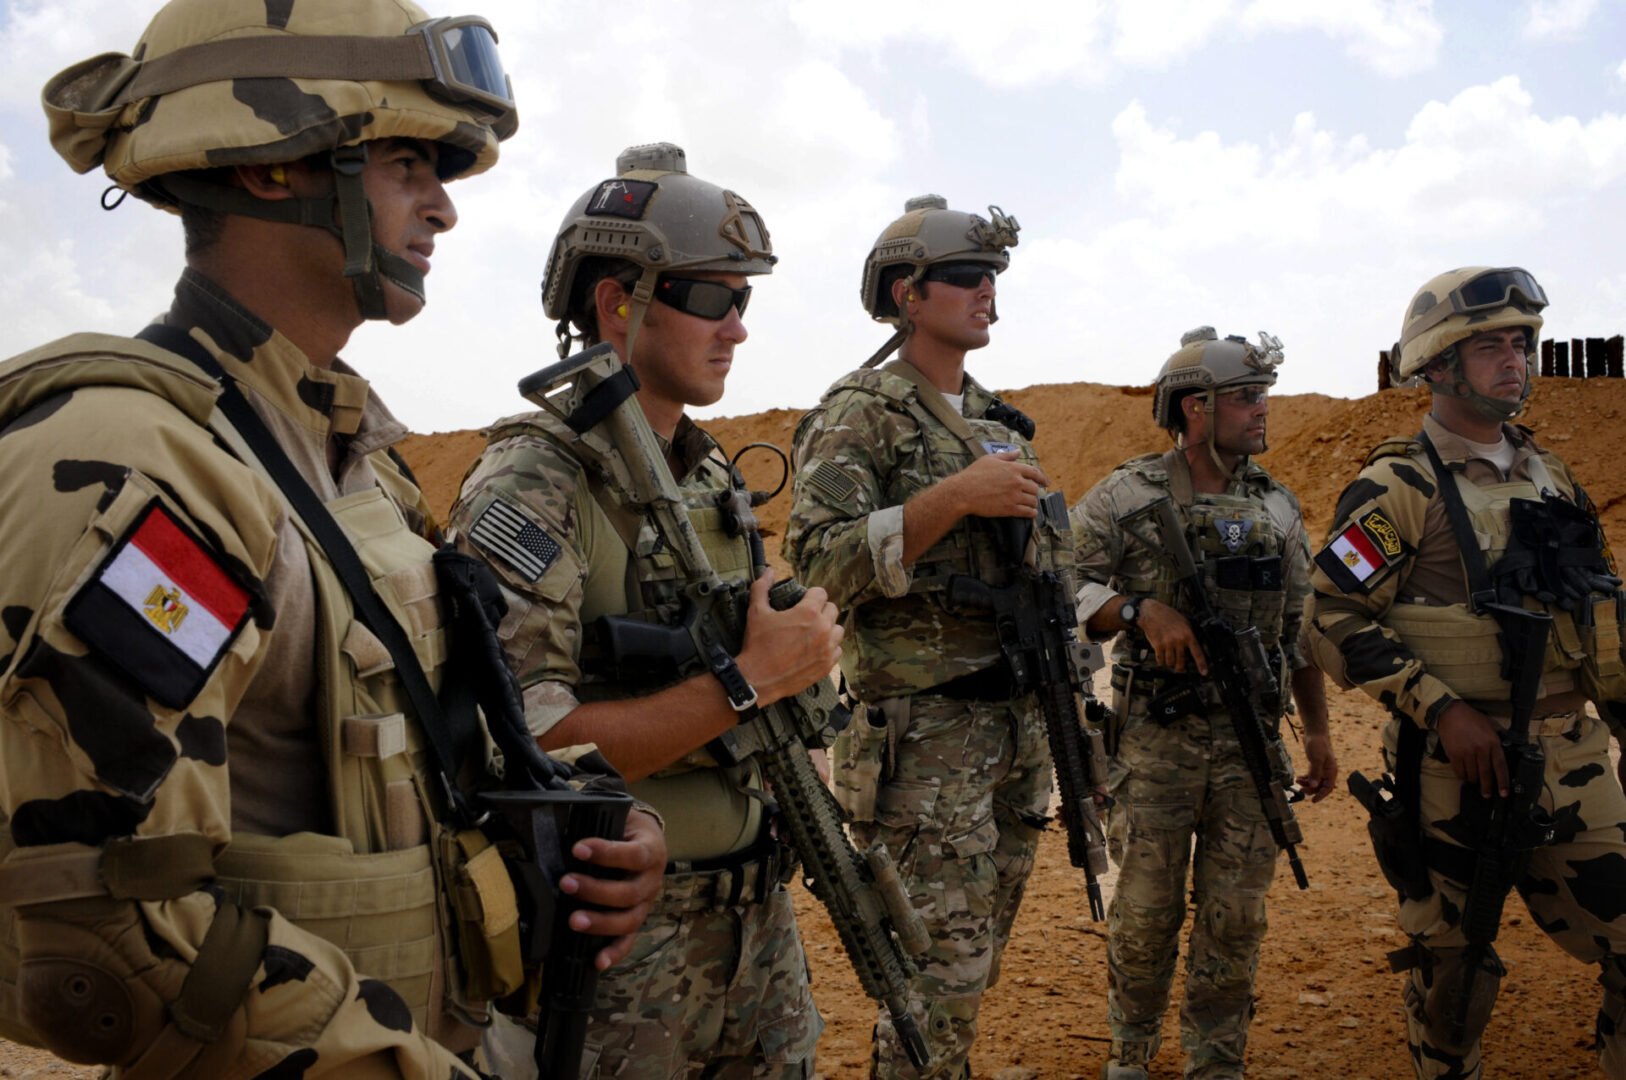 Egyptian and U.S. Special Operations Soldiers observe a small arms range, which was part of Exercise Bright Star. The exercise is held to promote and enhance regional security and cooperation between the seven participating nations, which include the Arab Republic of Egypt, the United States, Jordan, the Kingdom of Saudi Arabia, Greece, the United Kingdom, and France.